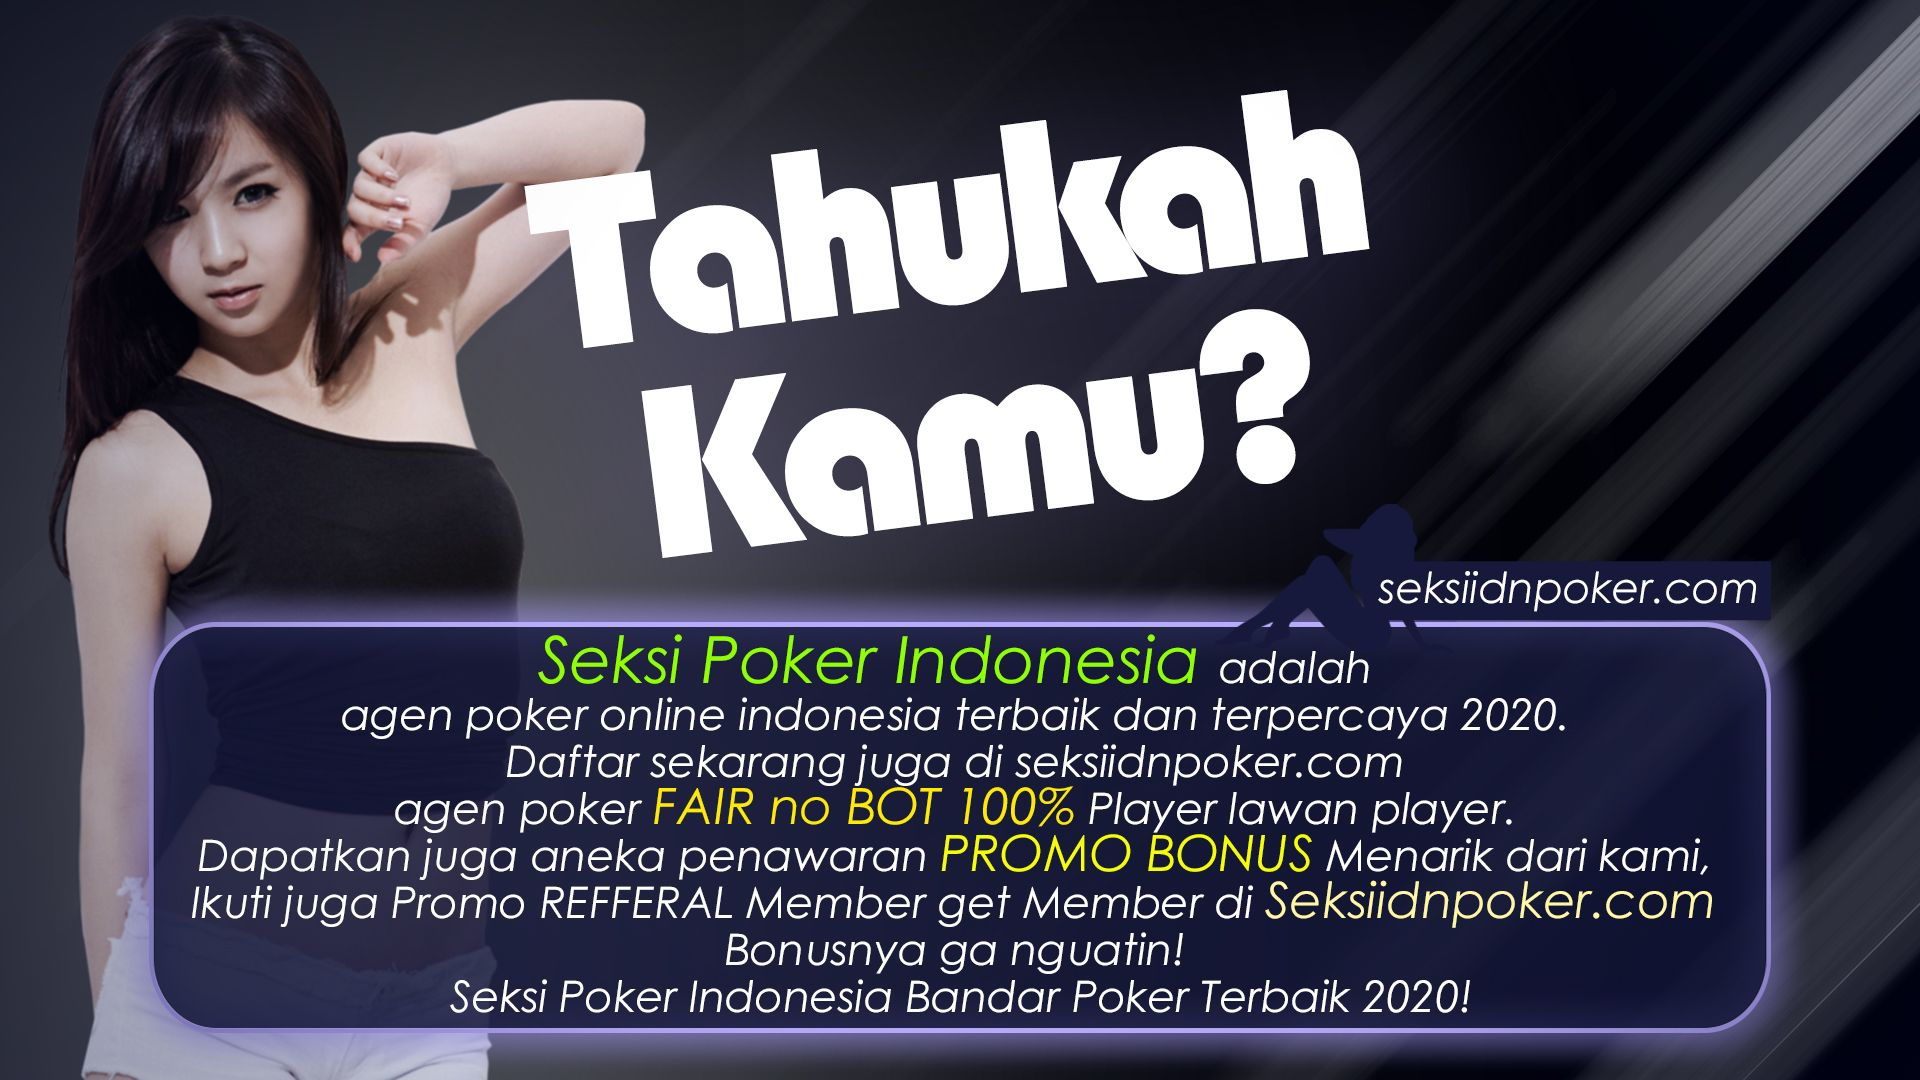 Pin on Seksipoker Seksi Poker Poker Online CC